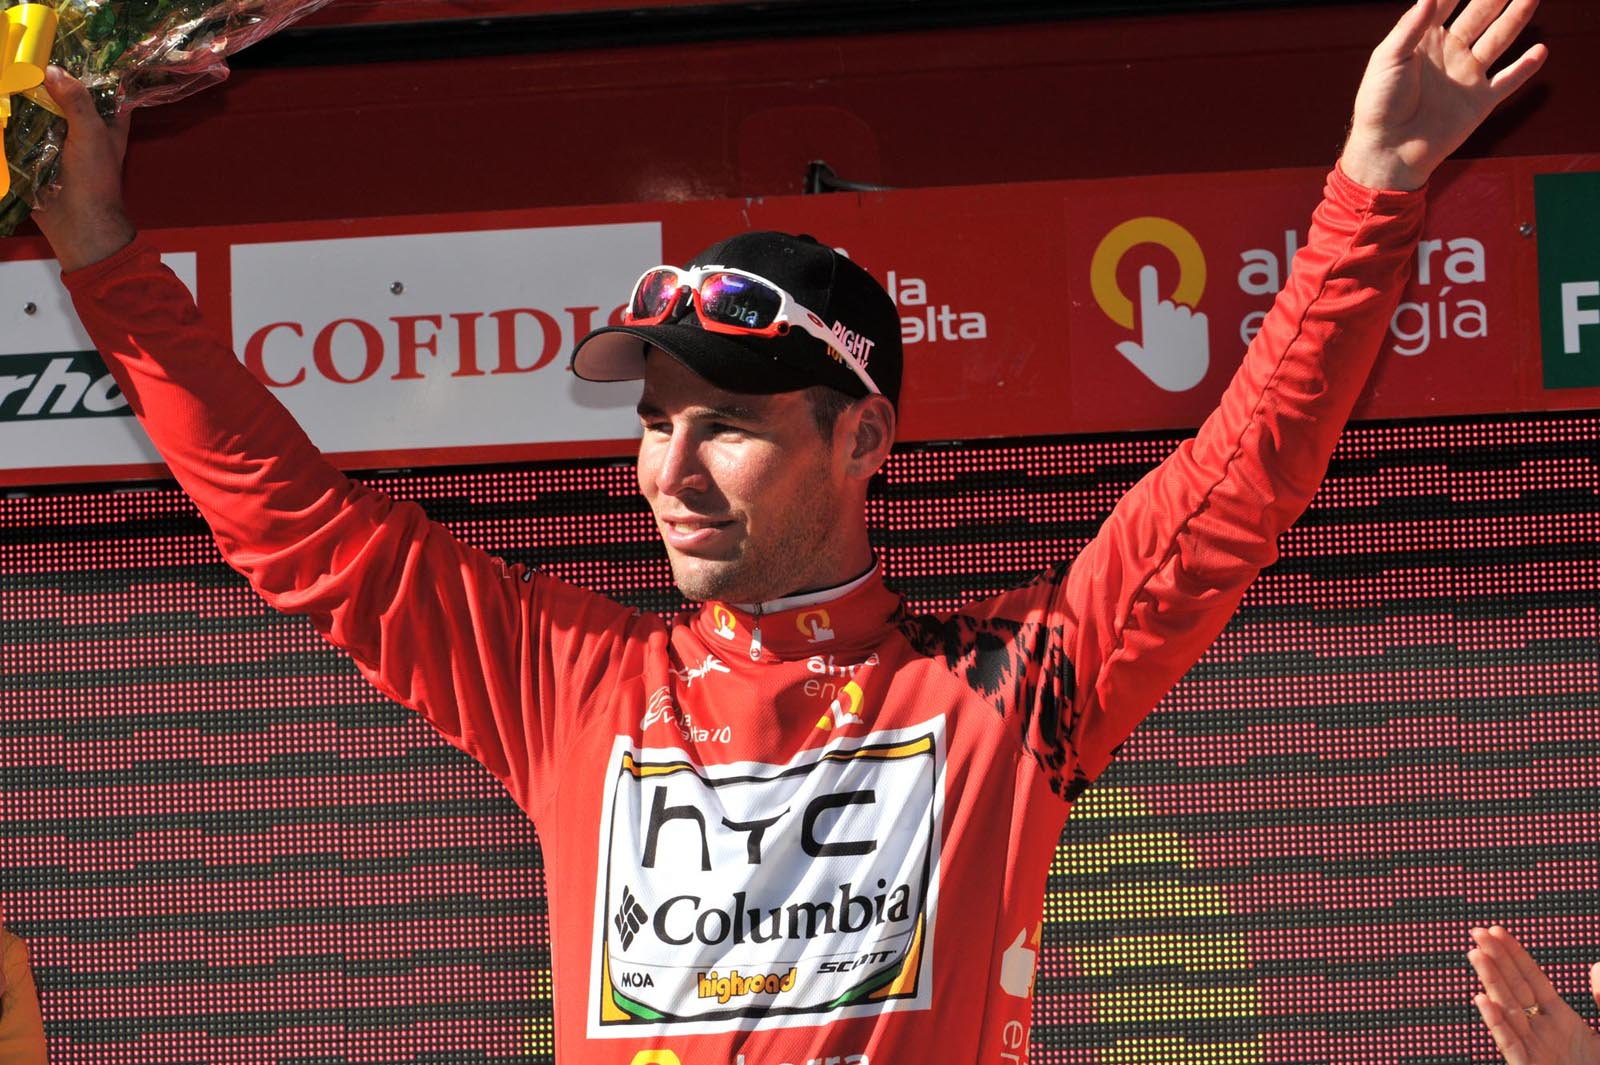 Mark Cavendish, race leader, Vuelta a Espana 2010, stage two